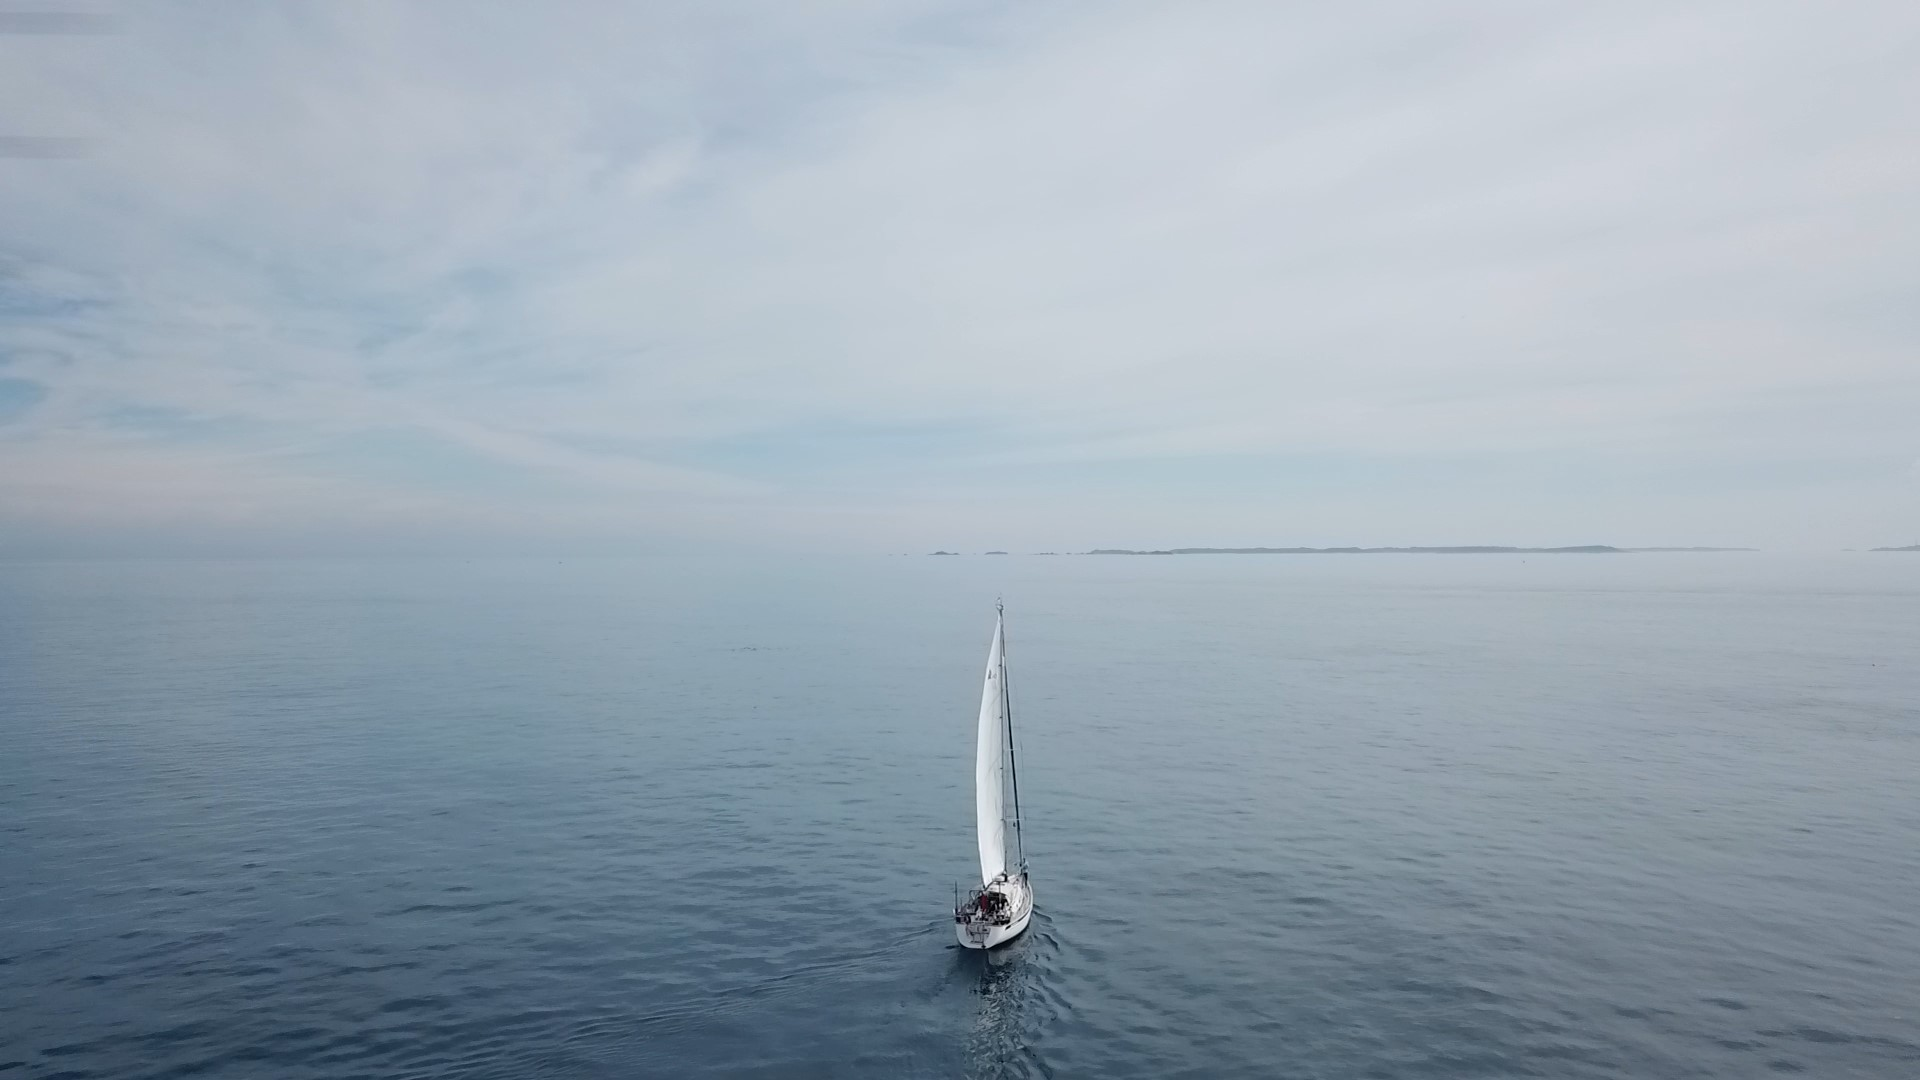 Approaching Scilly